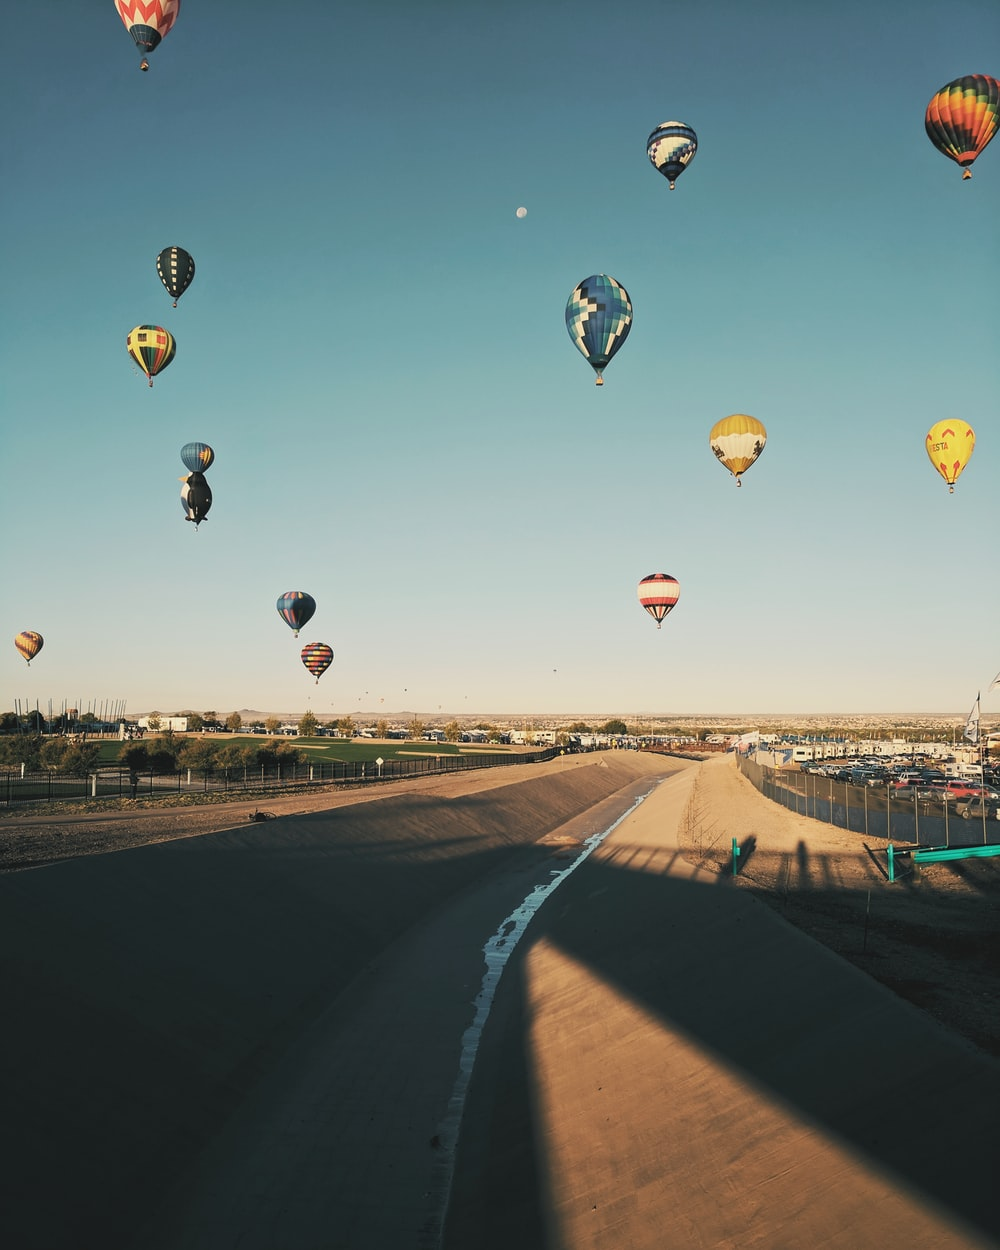 floating hot air balloons under blue calm sky